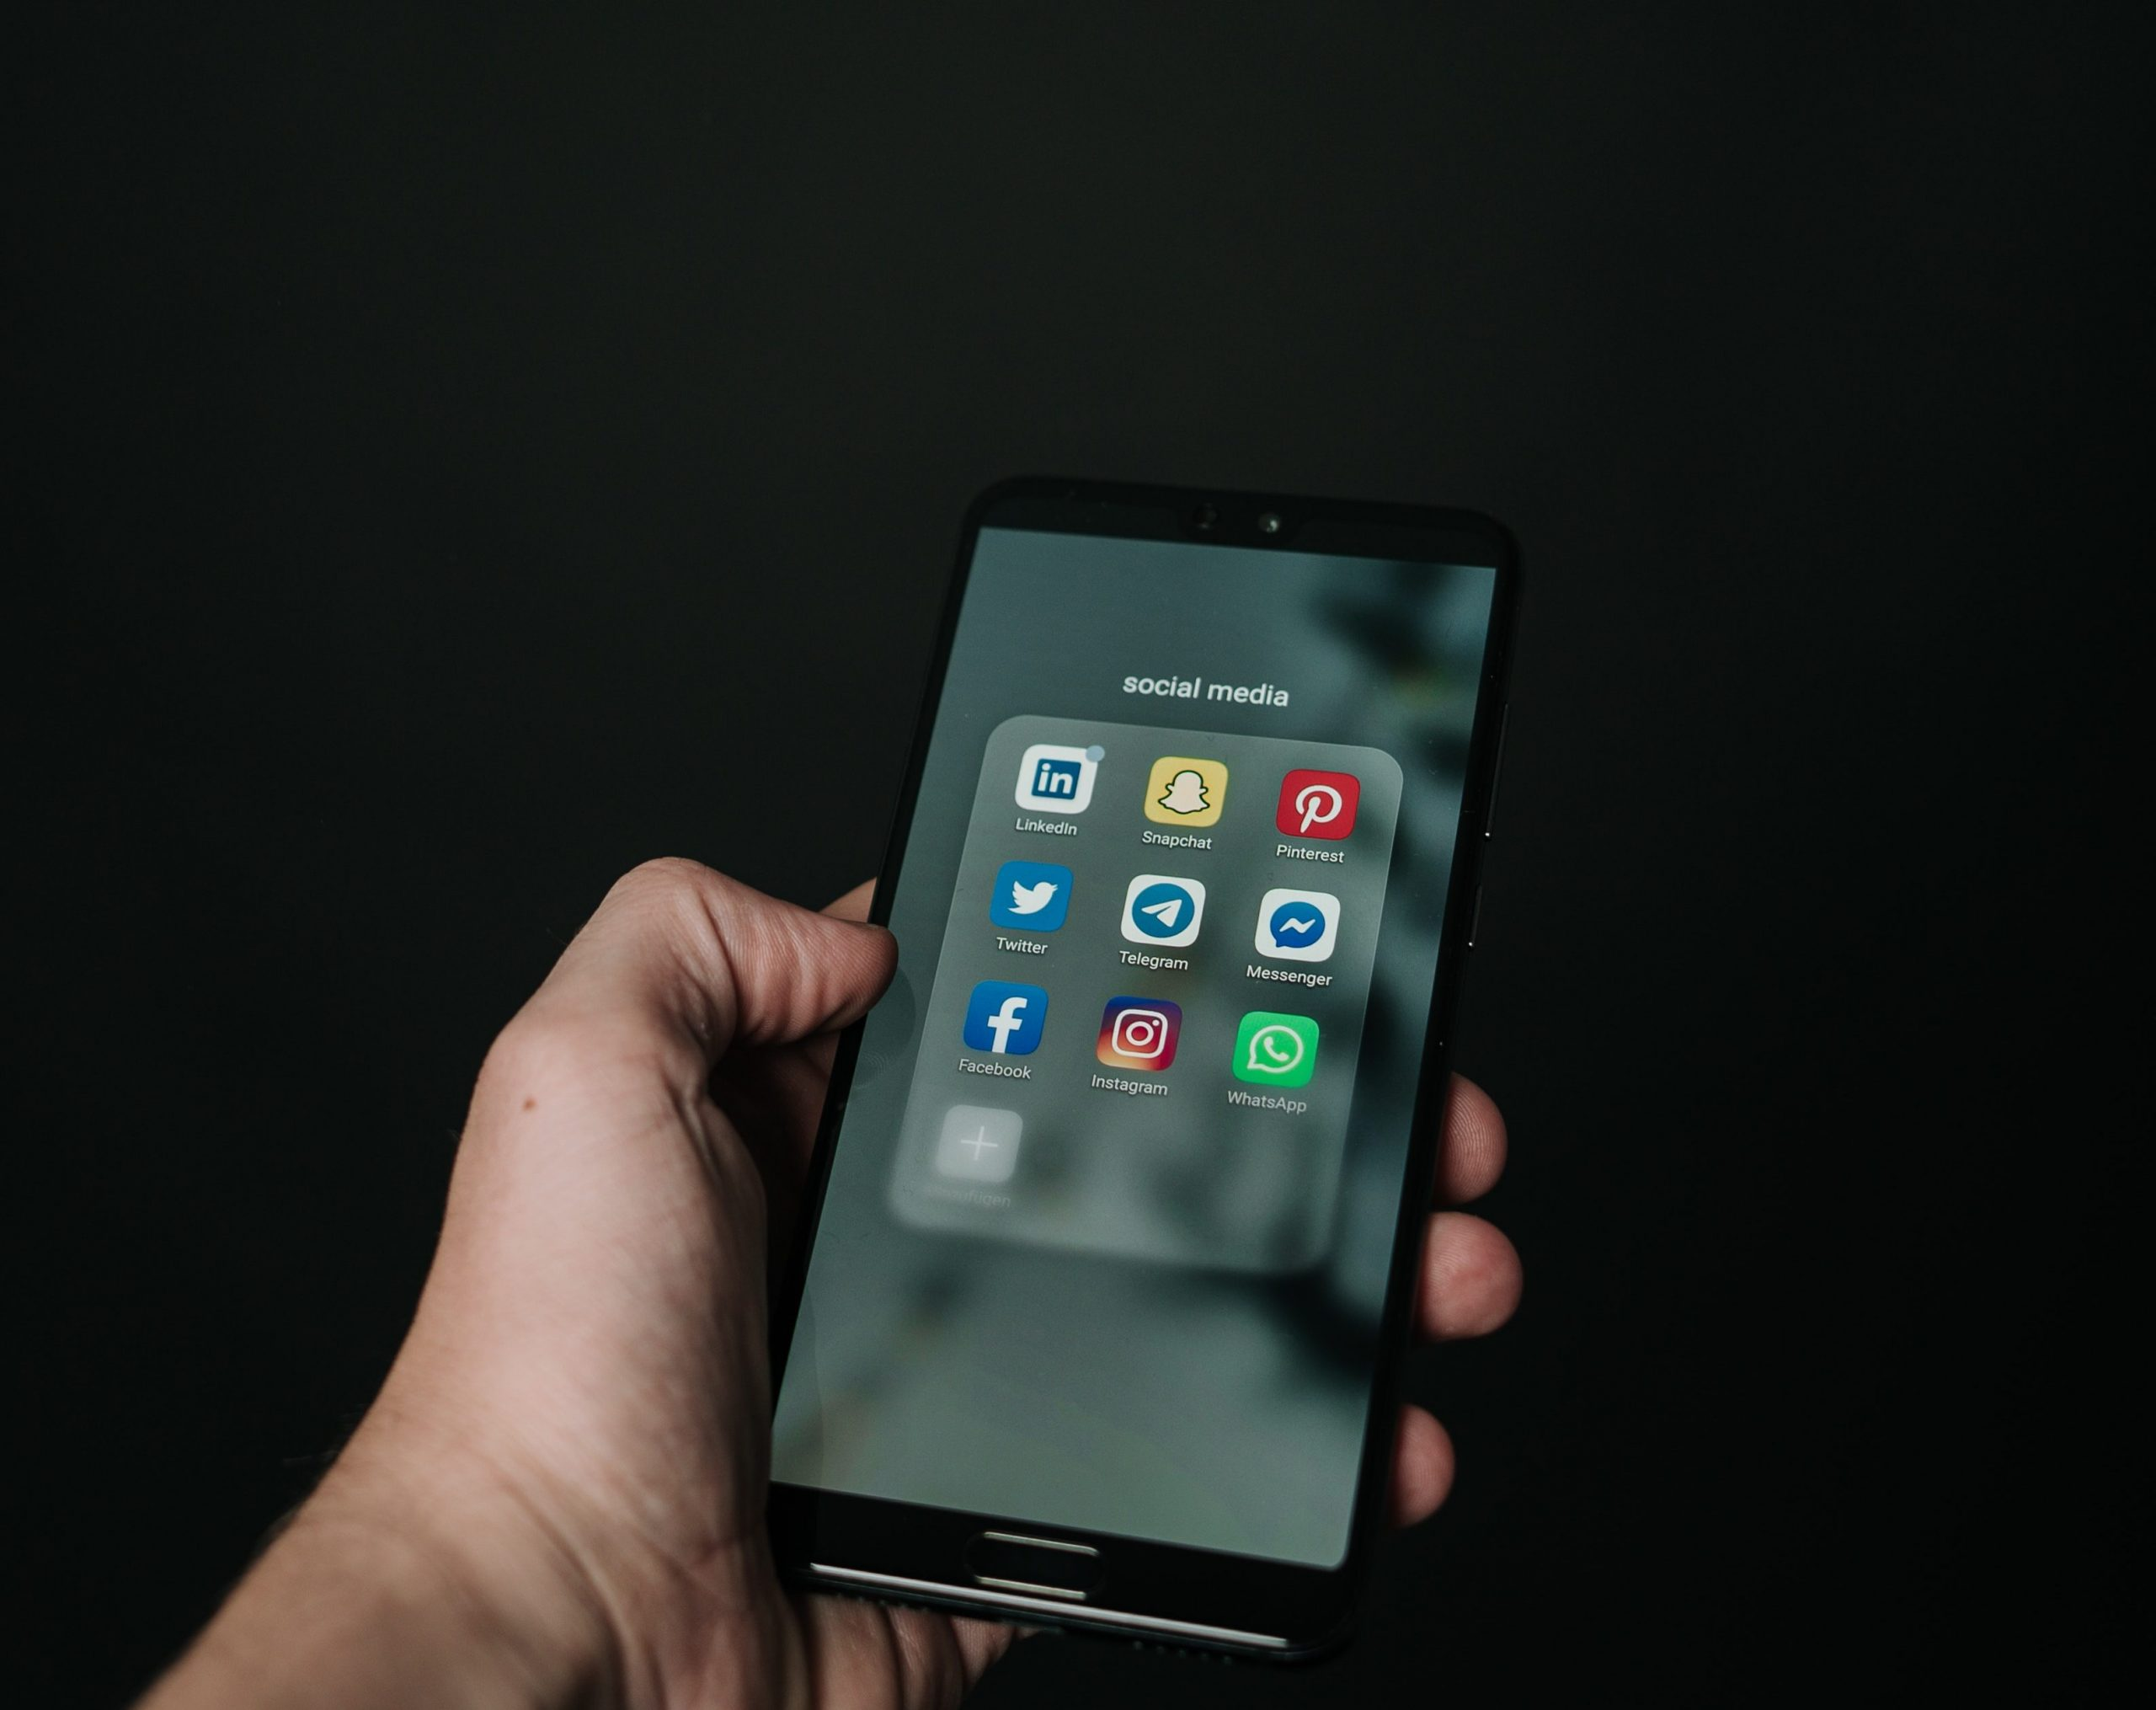 phone with social media apps on screen